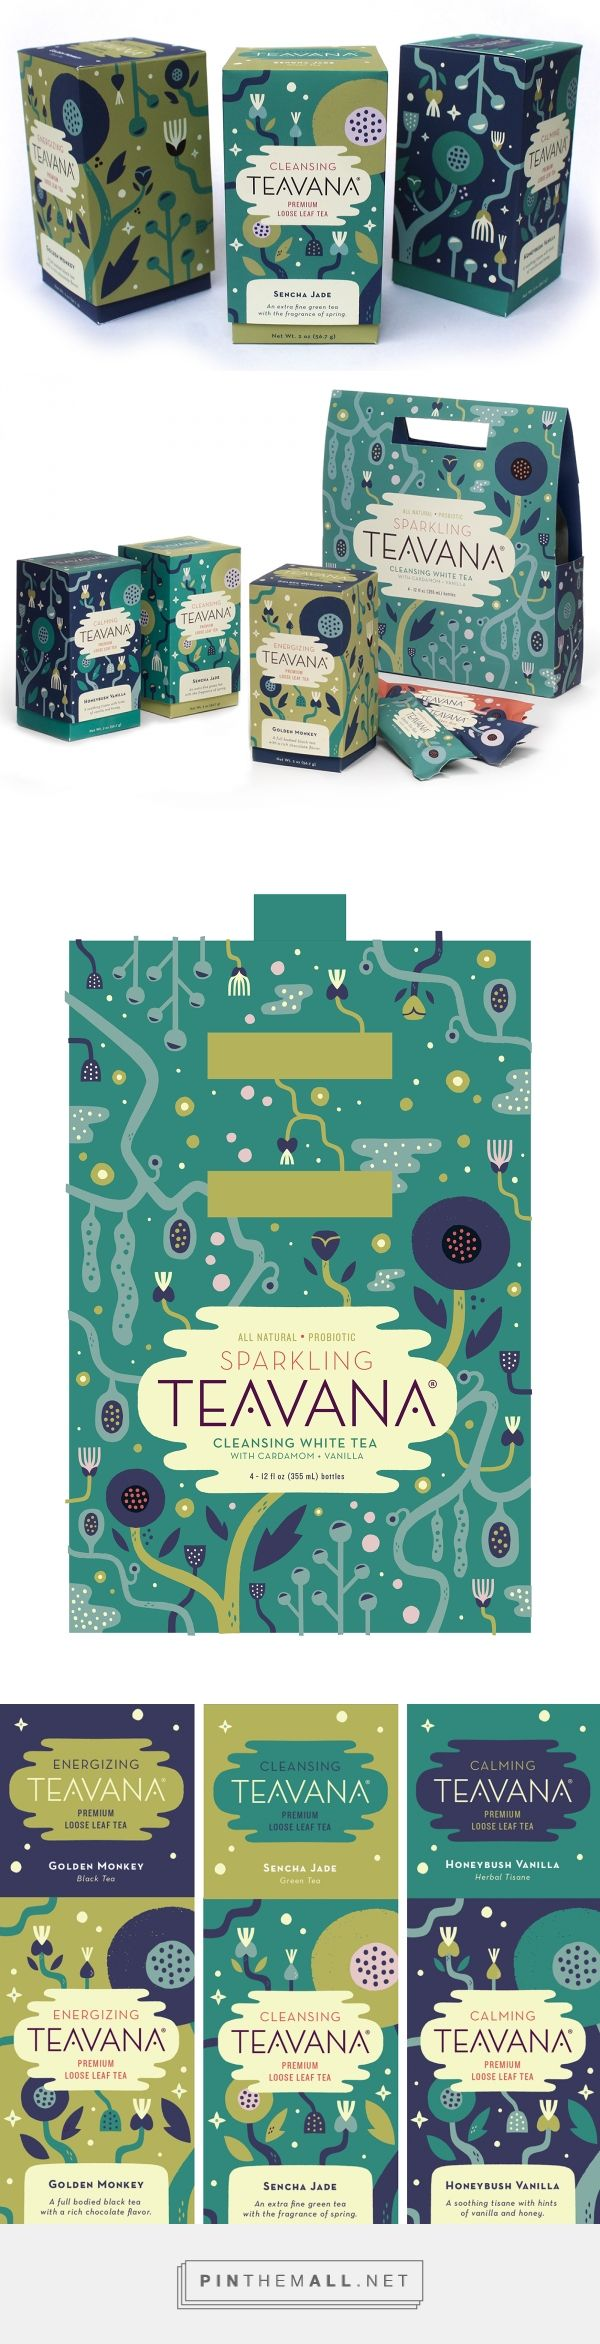 Wonderful calming colors and illustration style! Teavana Tea Rebrand by Alexander Vidal